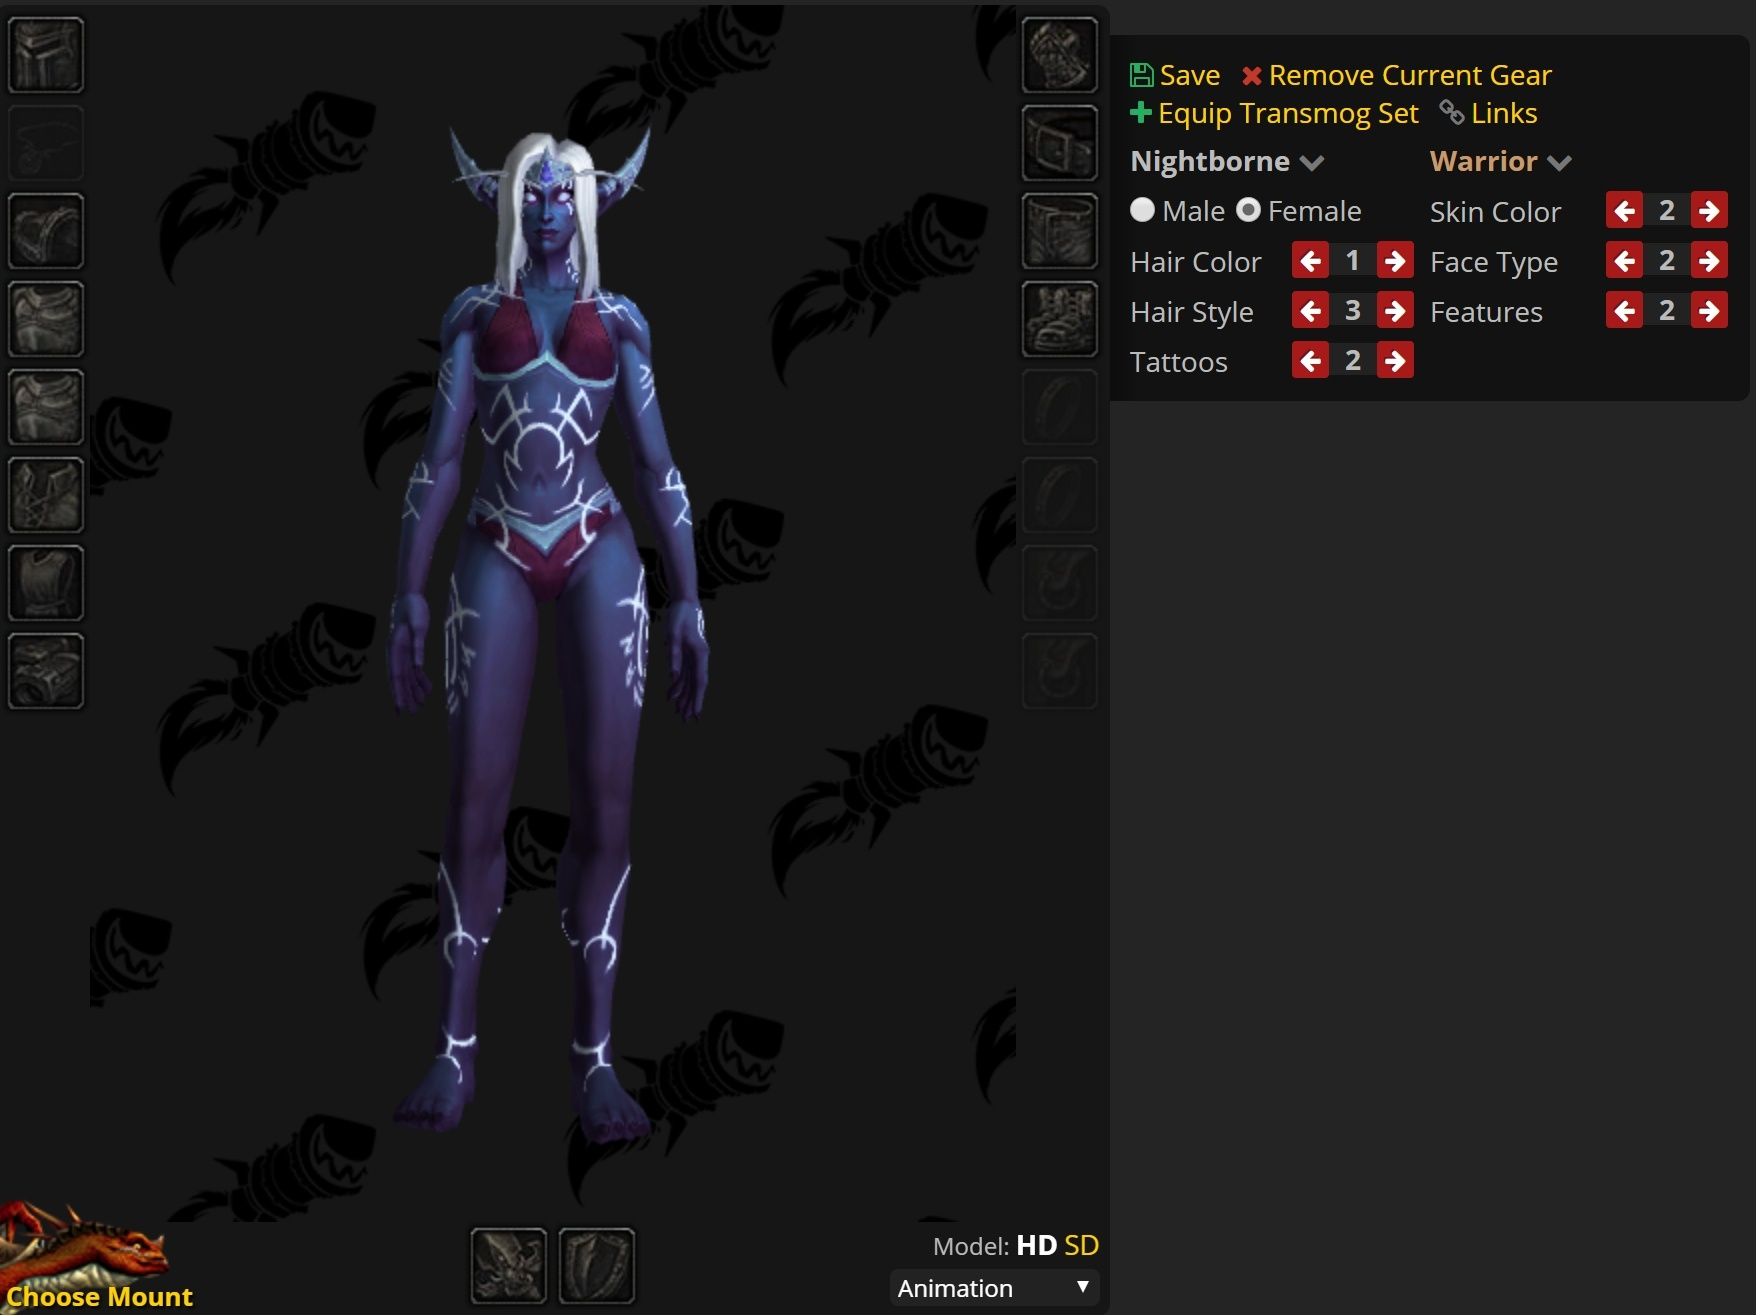 Allied Races Character Customization Now Available in